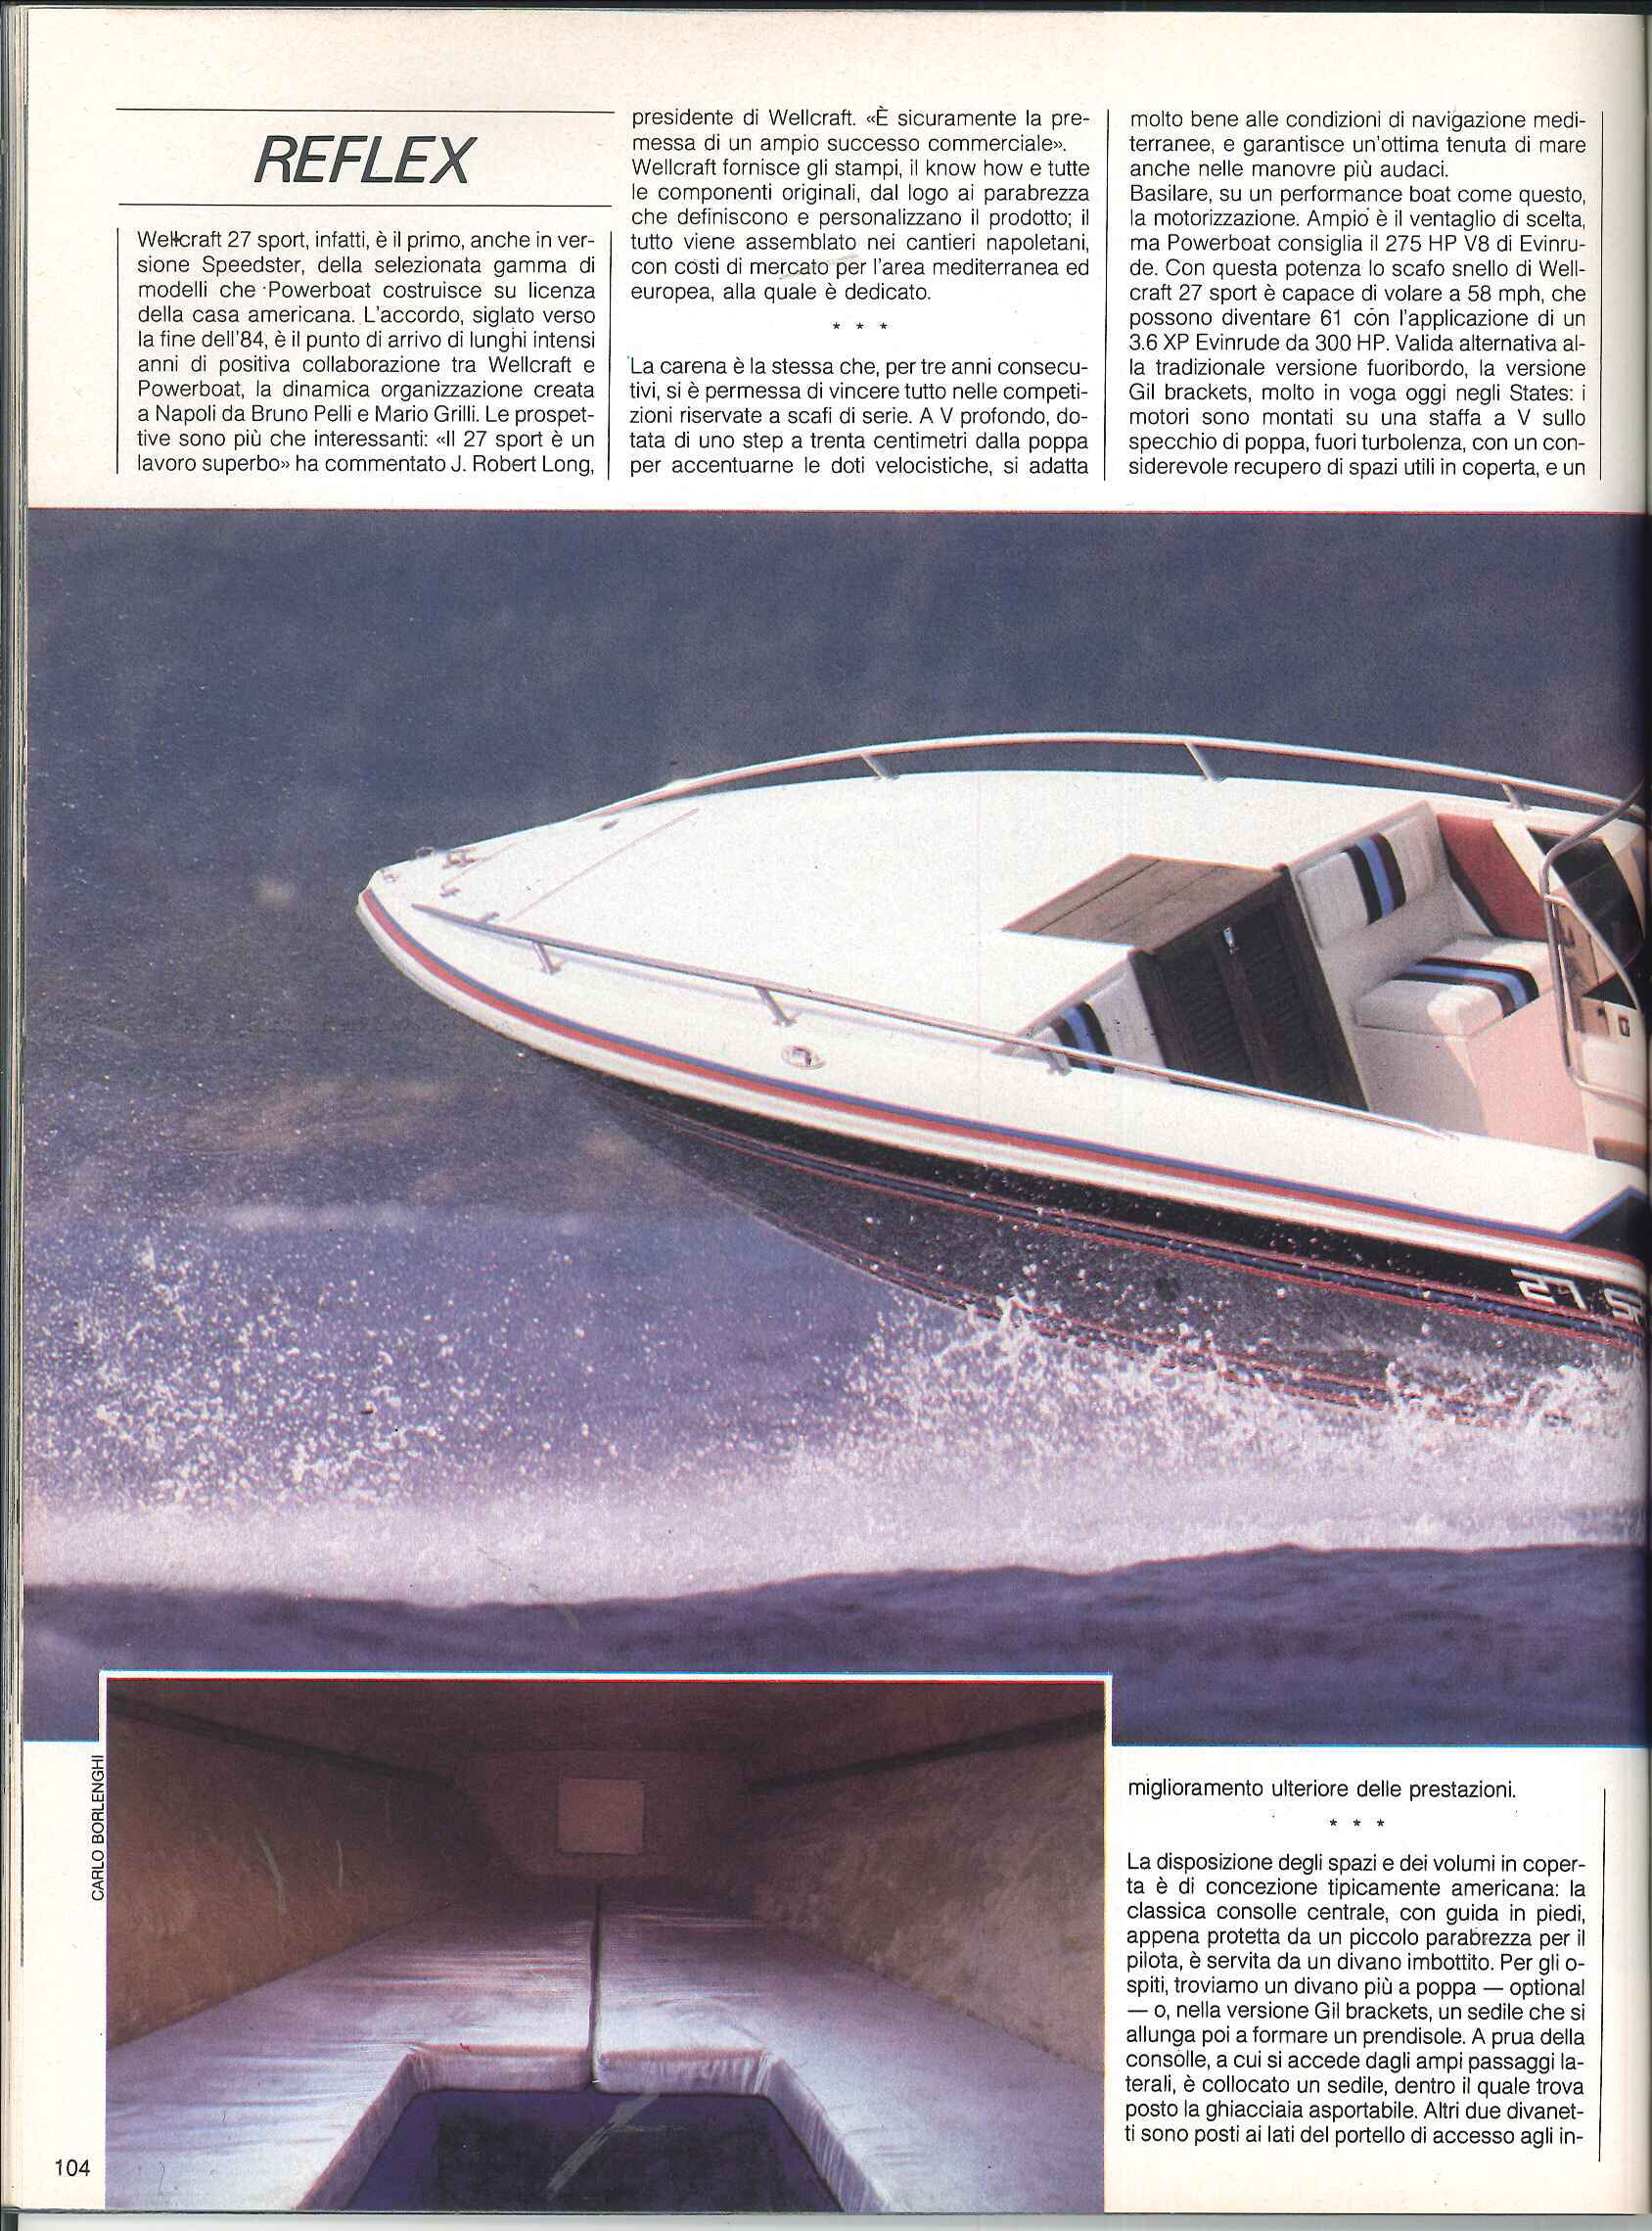 1985 03 PRESS WELLCRAFT 27 SPORT UOMO MARE N°85(3).jpg